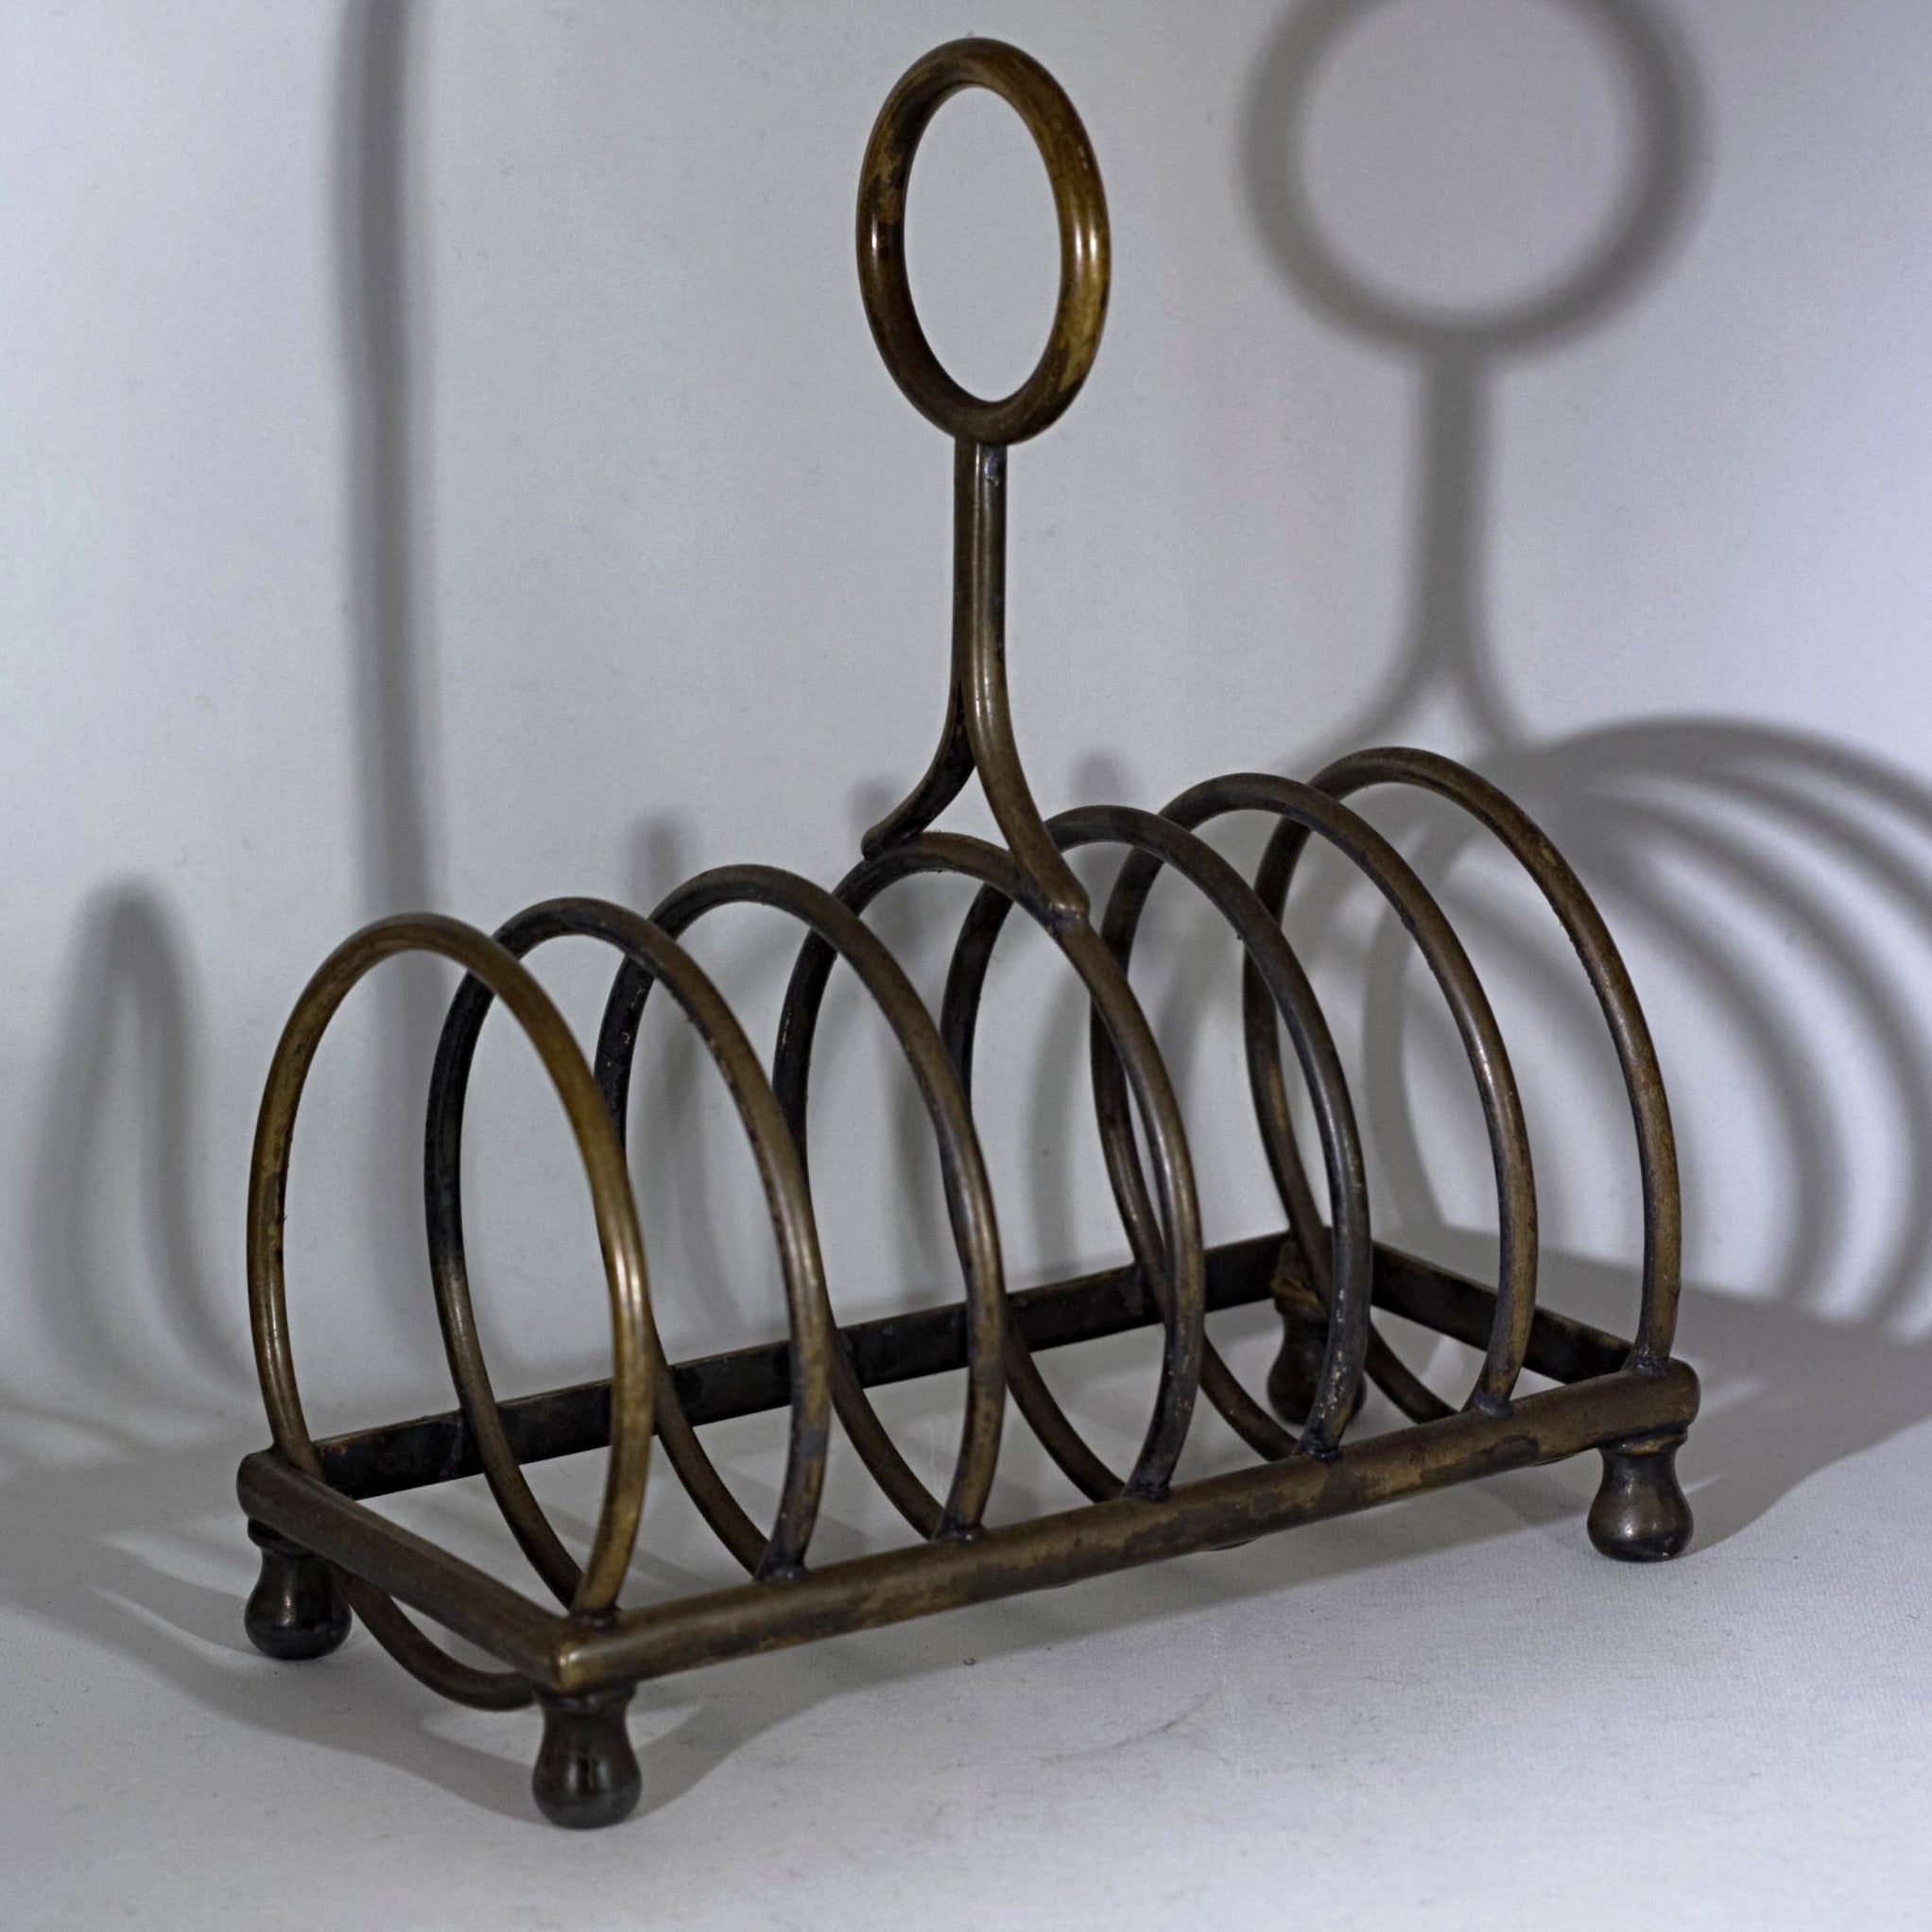 Mid-Century BRASS LETTER HOLDER or Sorter Circa 1940s - 1960s Don Draper Mad Men